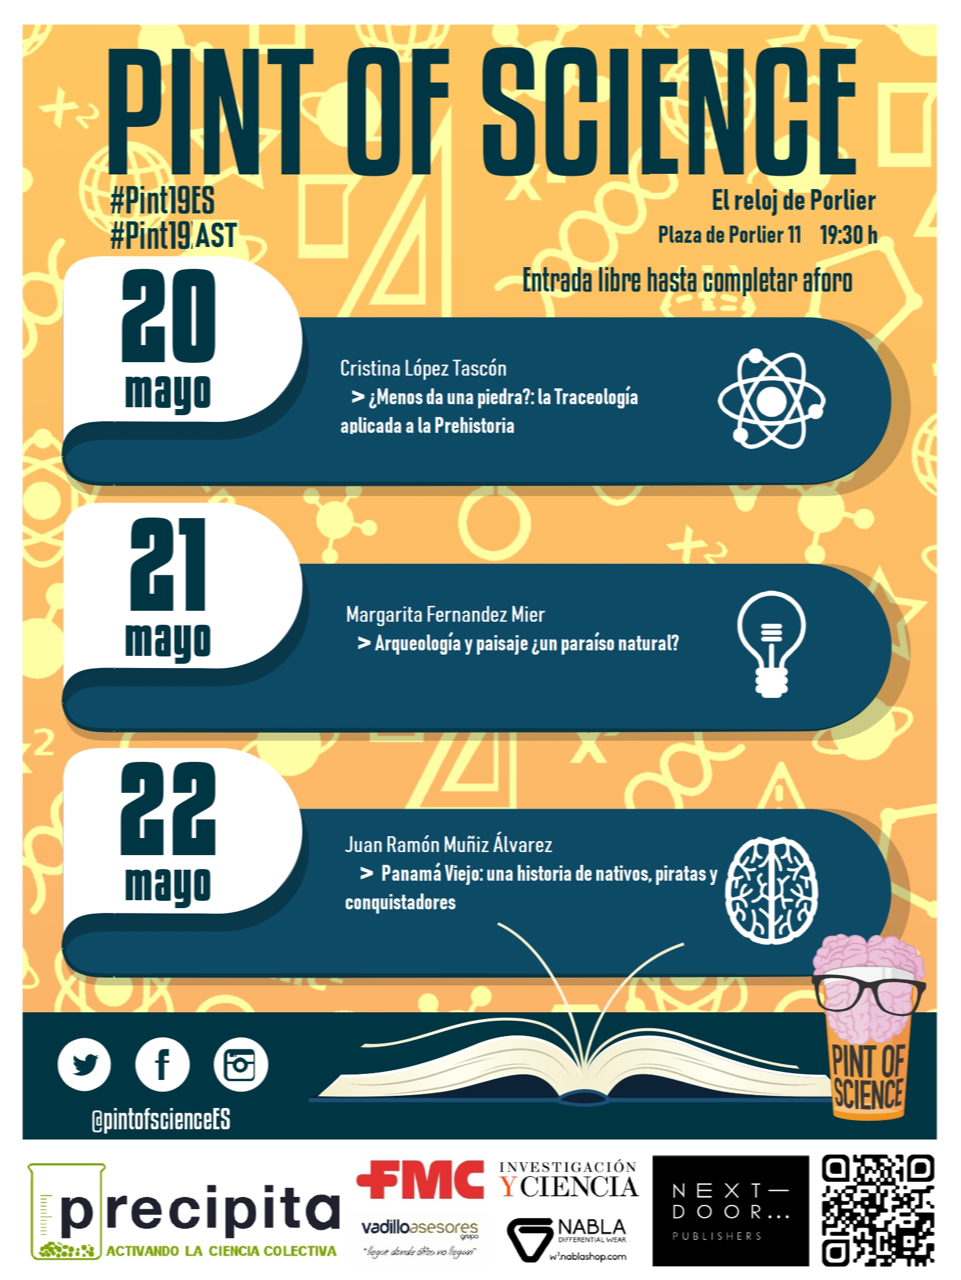 PINT OF SCIENCE FESTIVAL 20 - 22 MAYO 2019